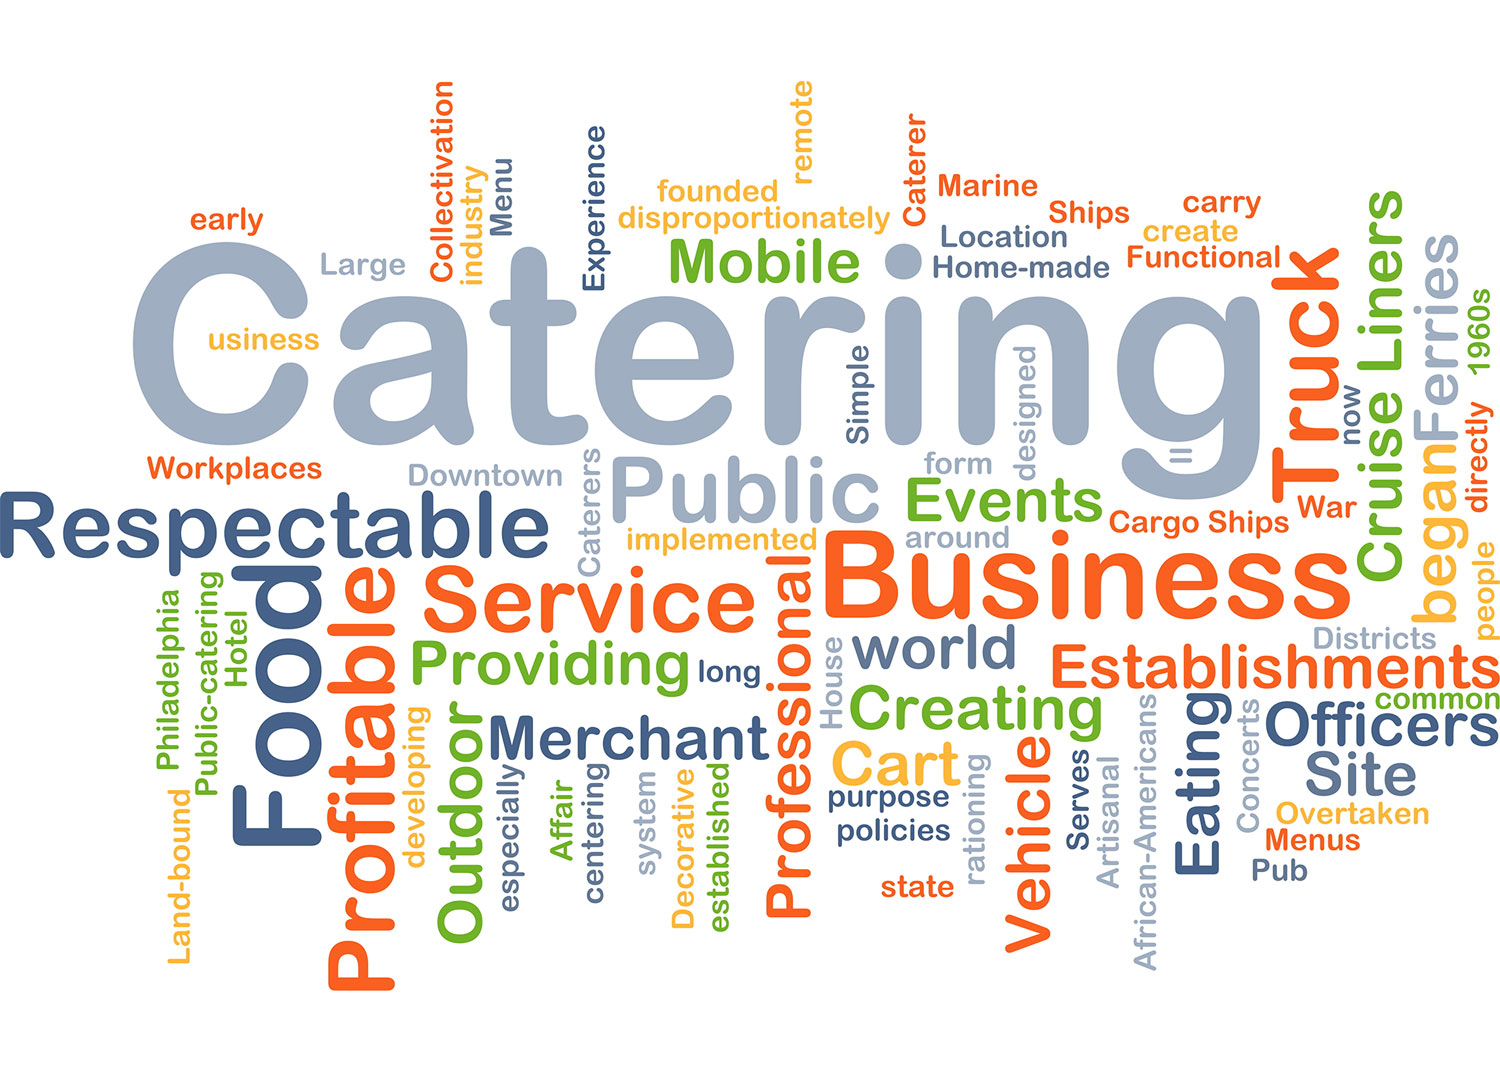 Word cloud around the topic of catering.